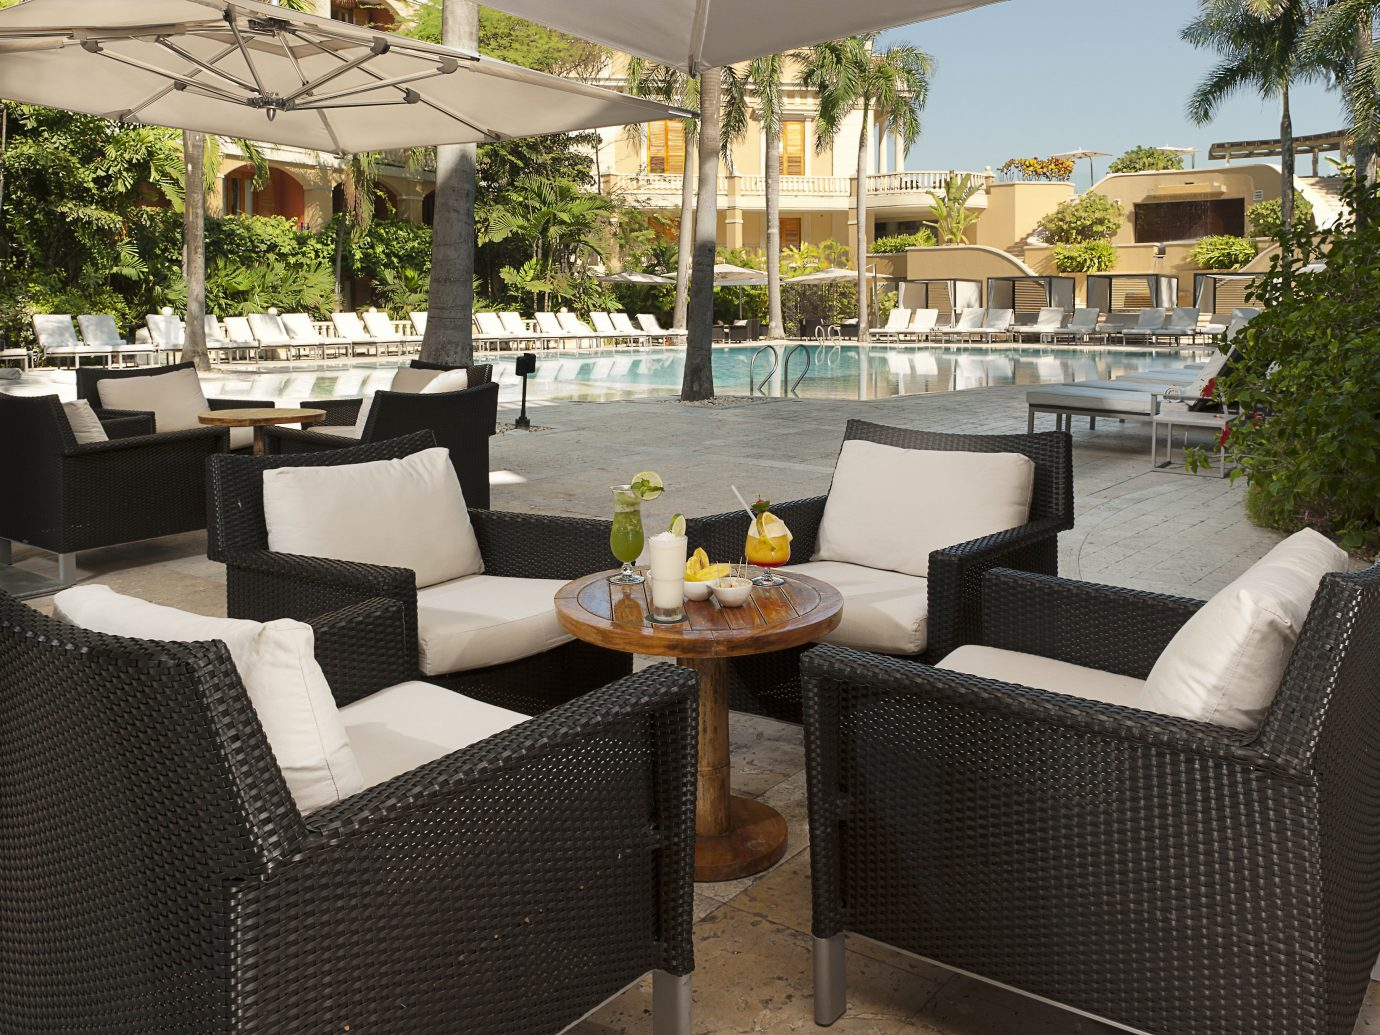 Exterior Hotels Living Lounge Luxury Modern Pool Romance tree table chair outdoor property room condominium Villa estate Resort real estate outdoor structure furniture Patio cottage backyard apartment area